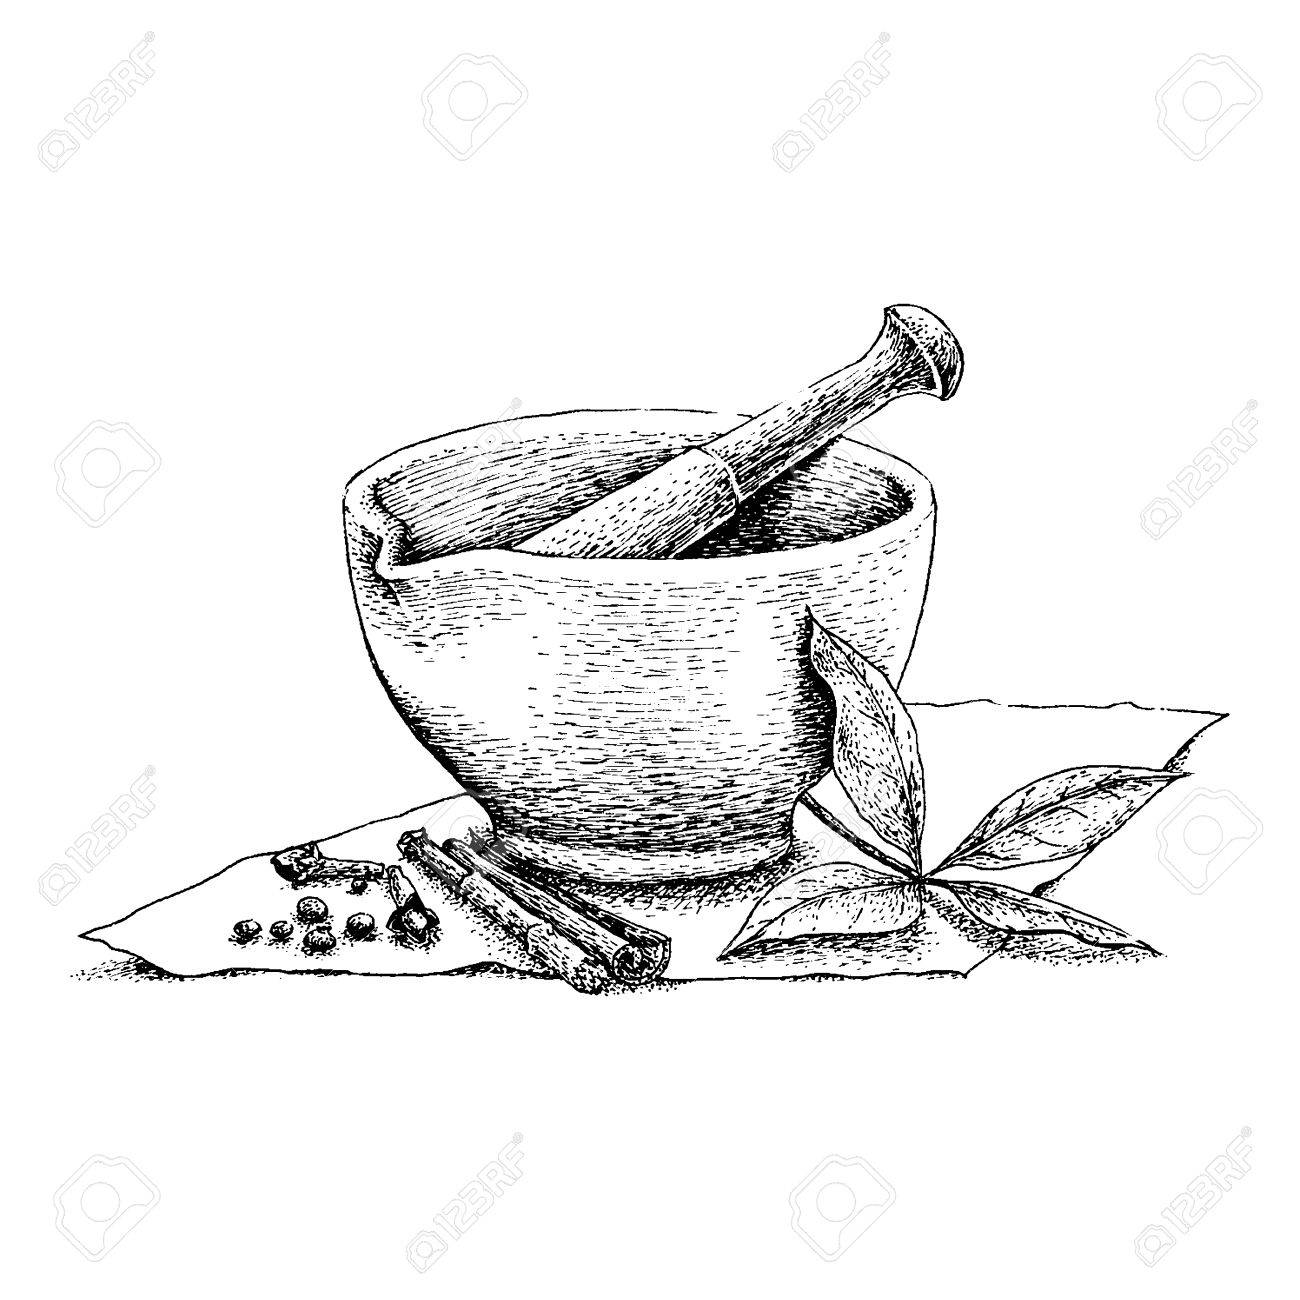 Mortar And Pestle Vintage Line Drawing Royalty Free Cliparts ... for Mortar And Pestle Drawing  15lptgx